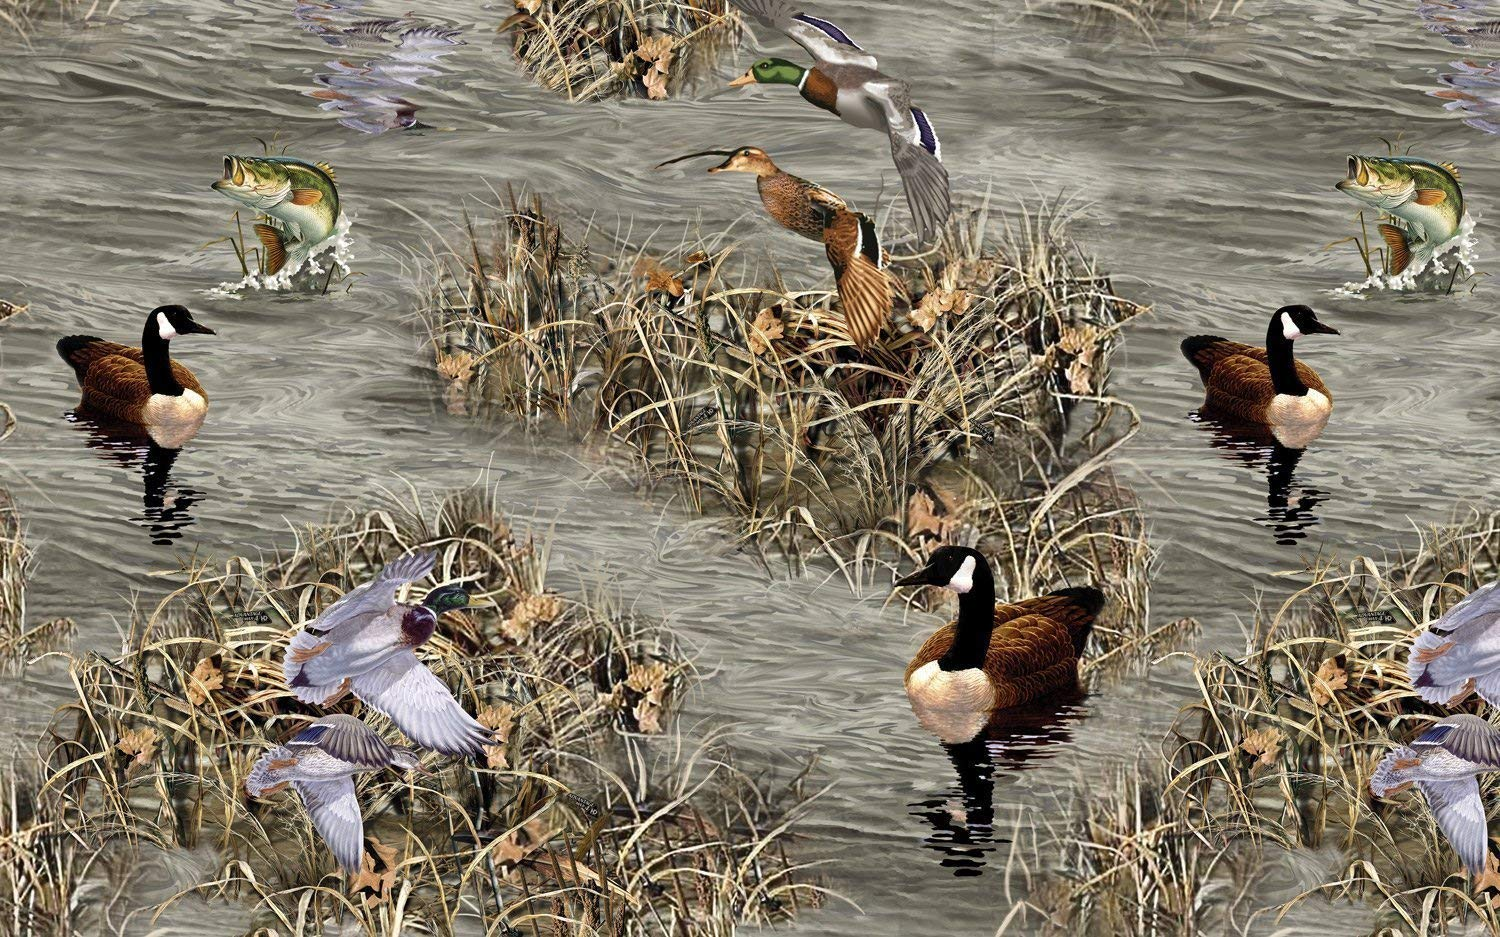 """1 Yard Pre-Cut - Realtree """"Down by the Lake"""" Ducks, Geese & Fish on Lake Scene 100% Cotton Fabric (Great for Quilting, Sewing, Craft Projects, Throw Pillows & More) Pre-Cut 1 Yard X 44"""""""